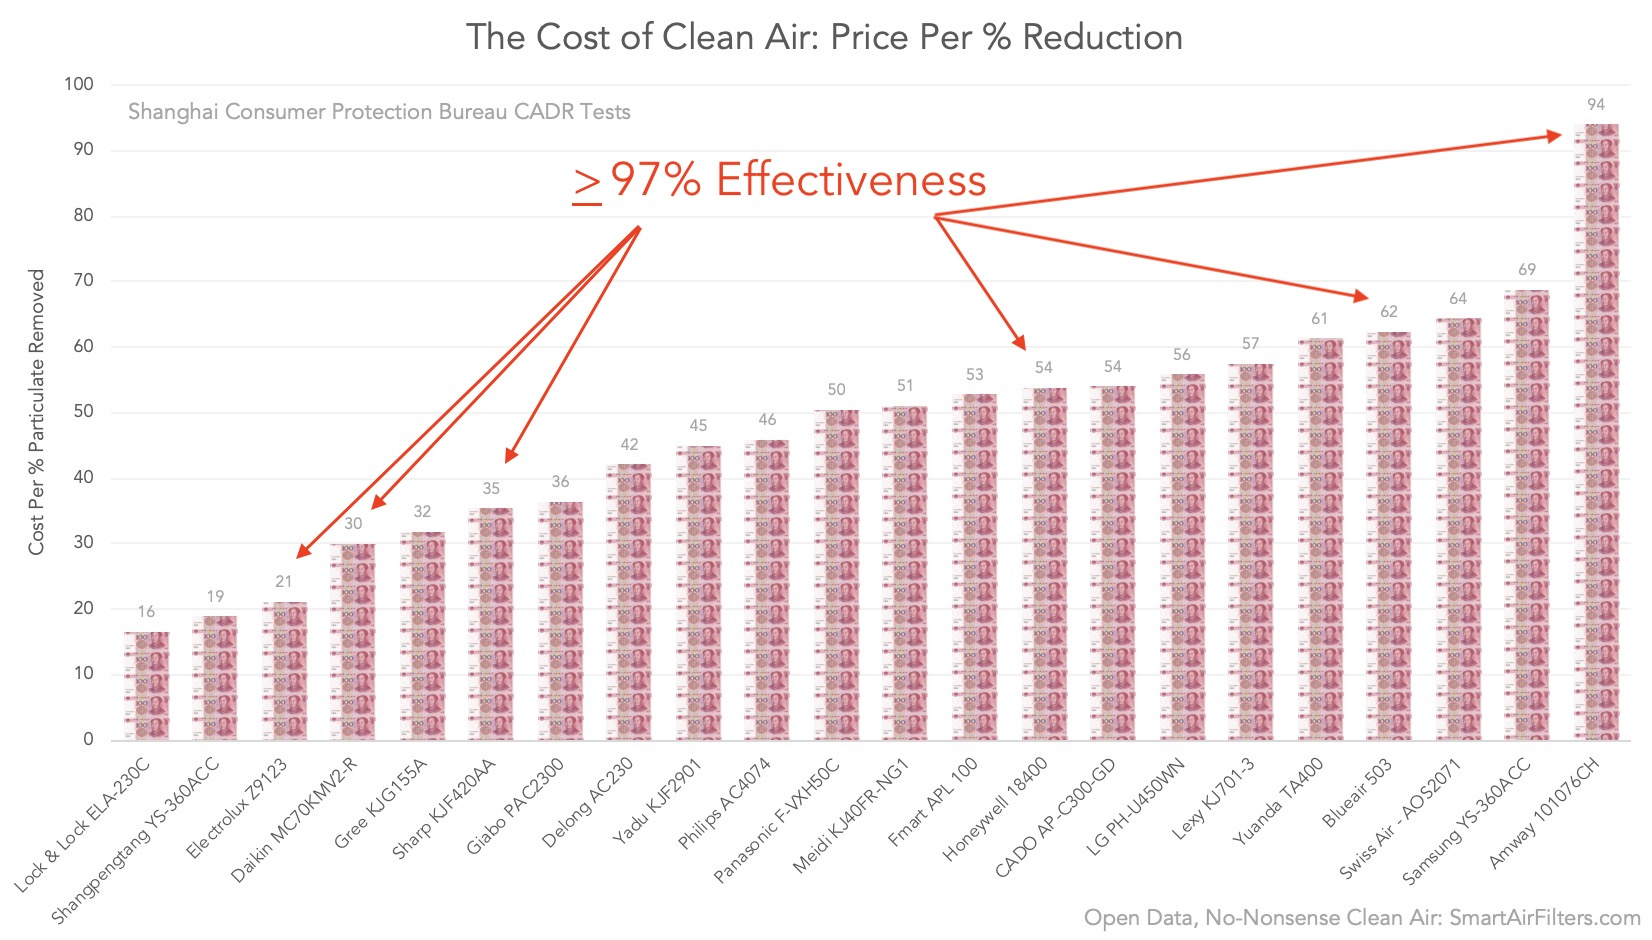 air purifiers achieved more than 97% effectiveness